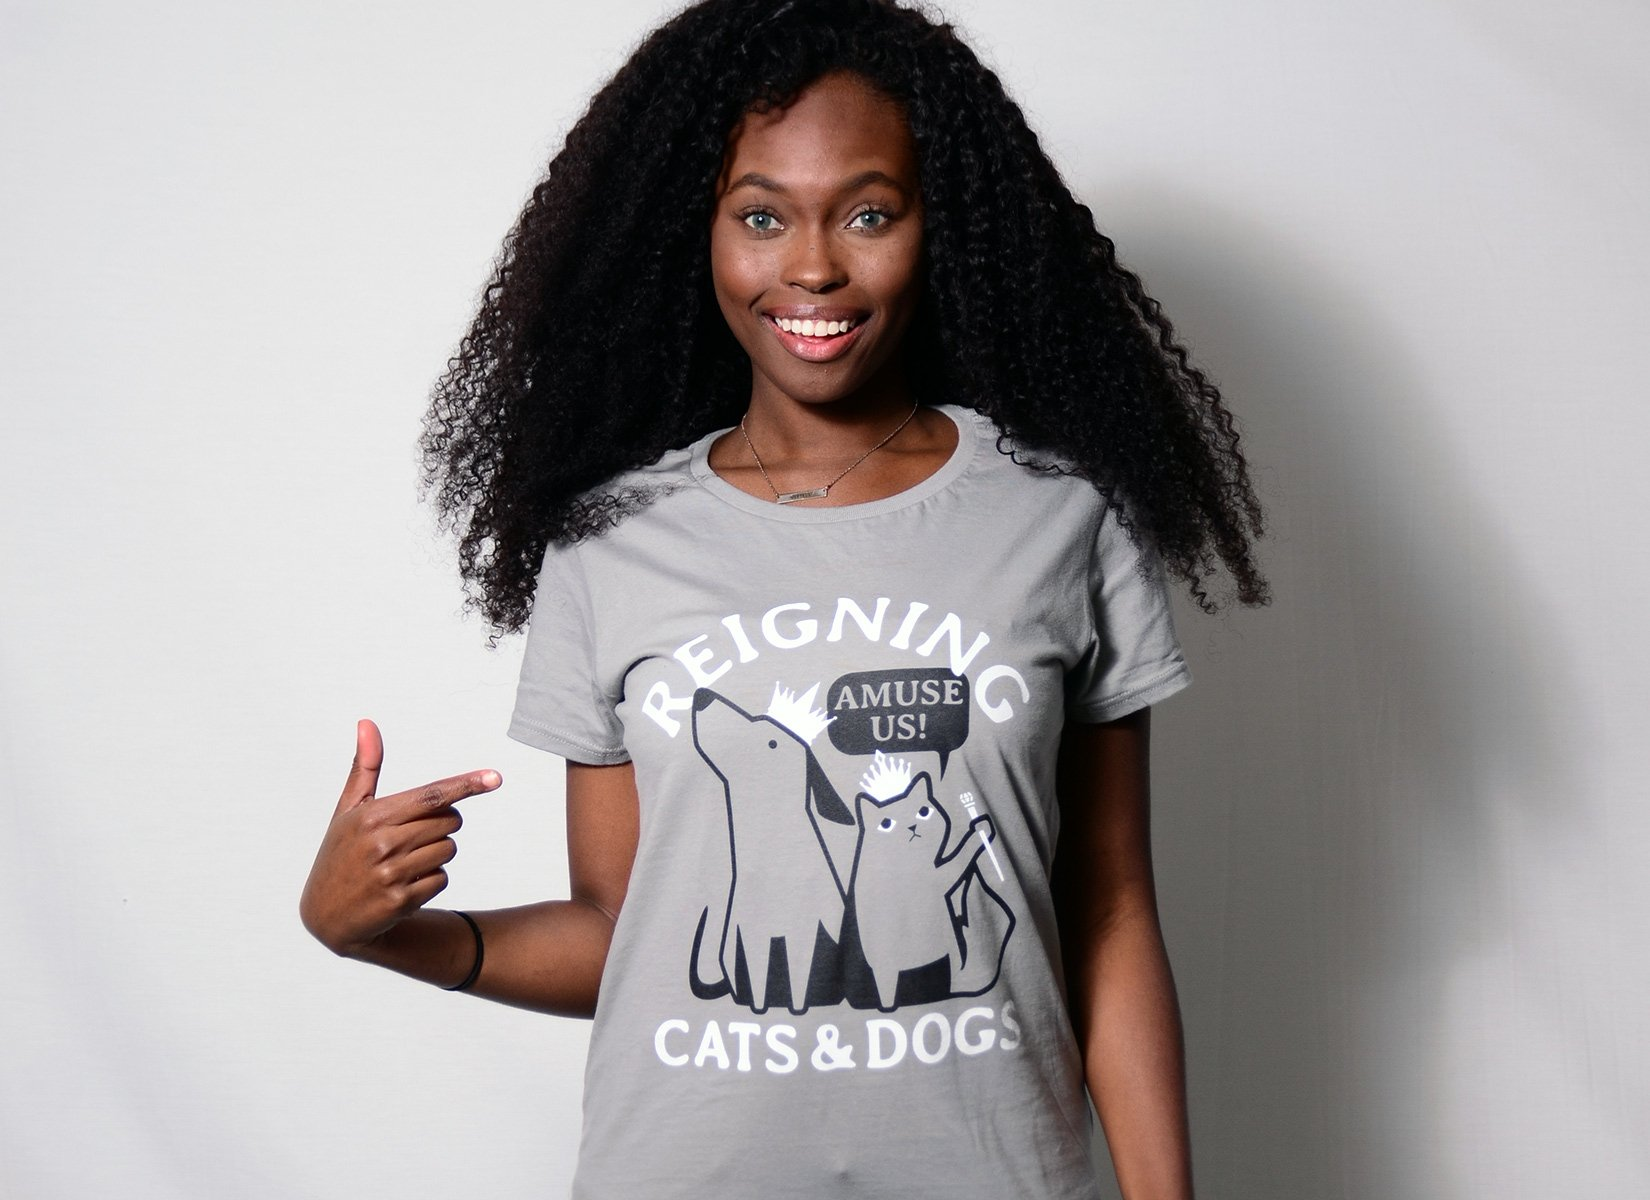 Reigning Cats And Dogs on Womens T-Shirt